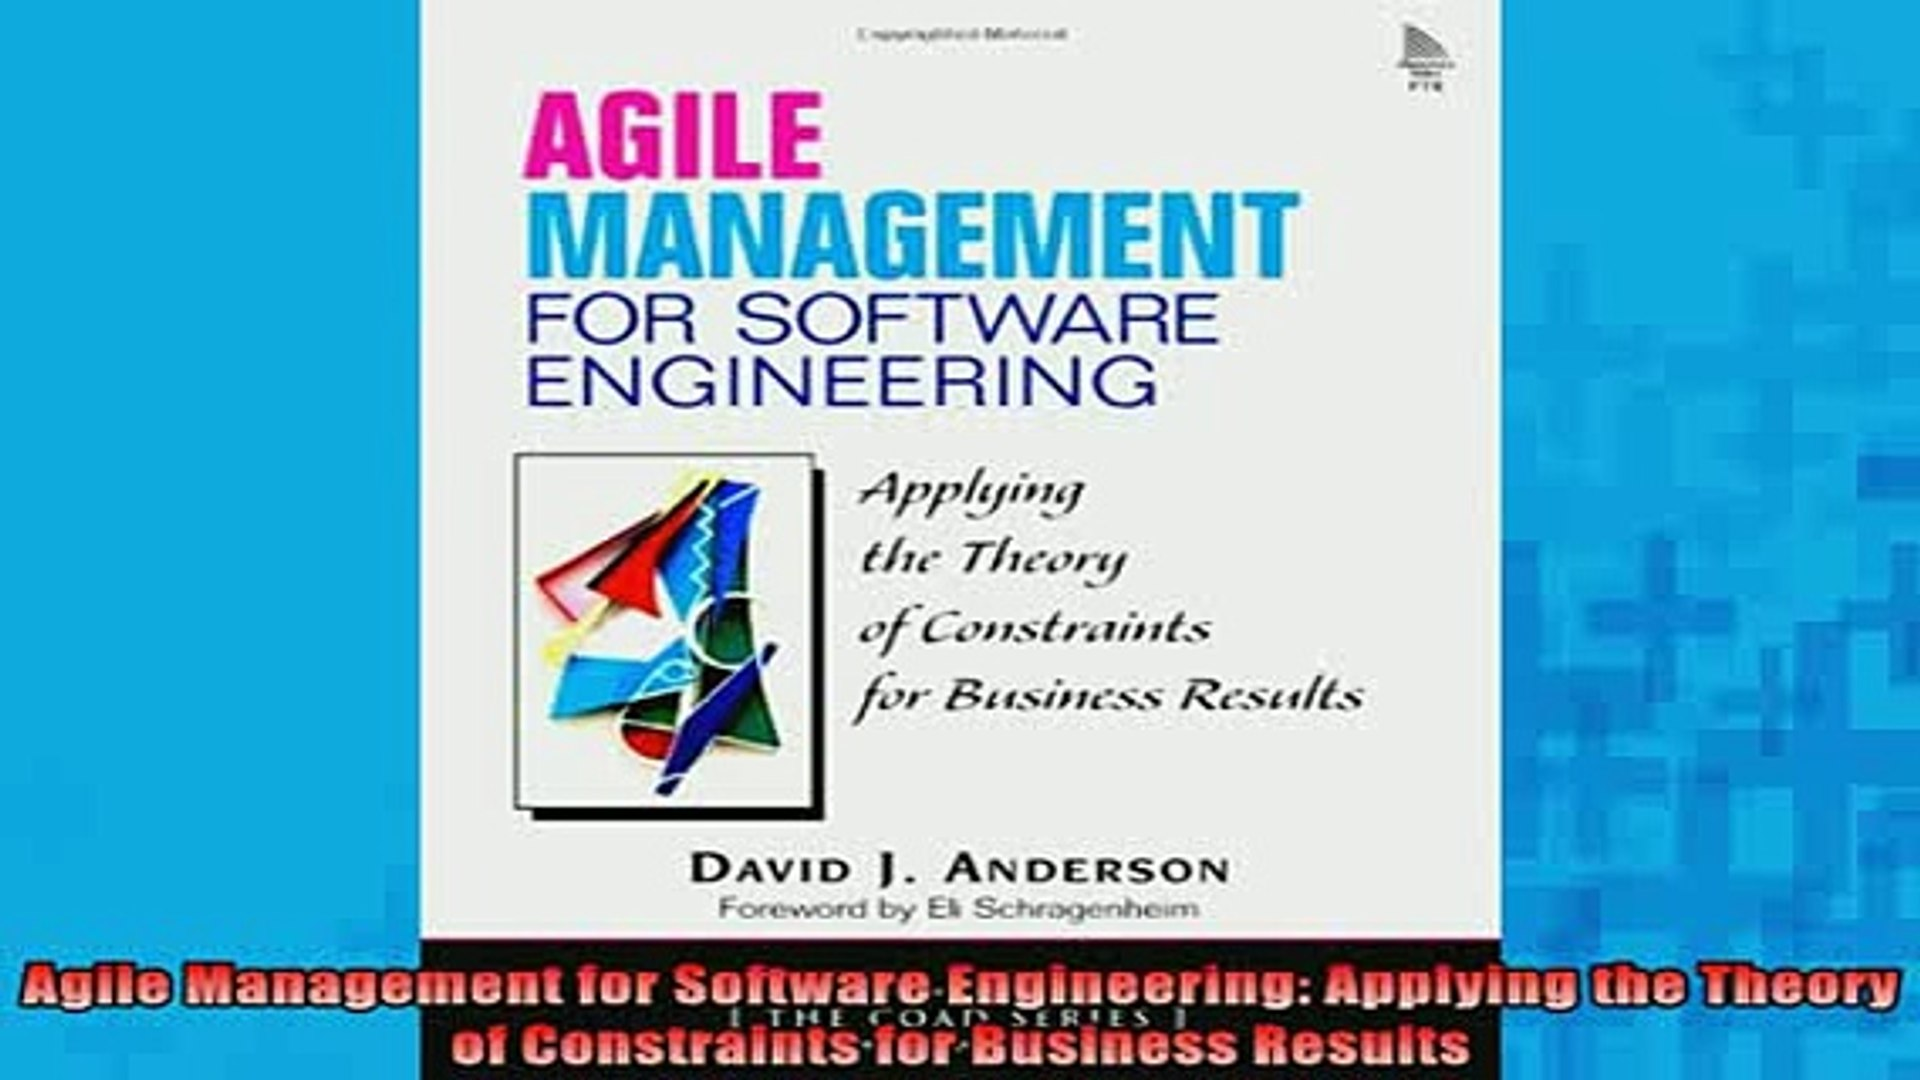 Read Book Agile Management For Software Engineering Applying The Theory Of Constraints For Business Full Free Video Dailymotion